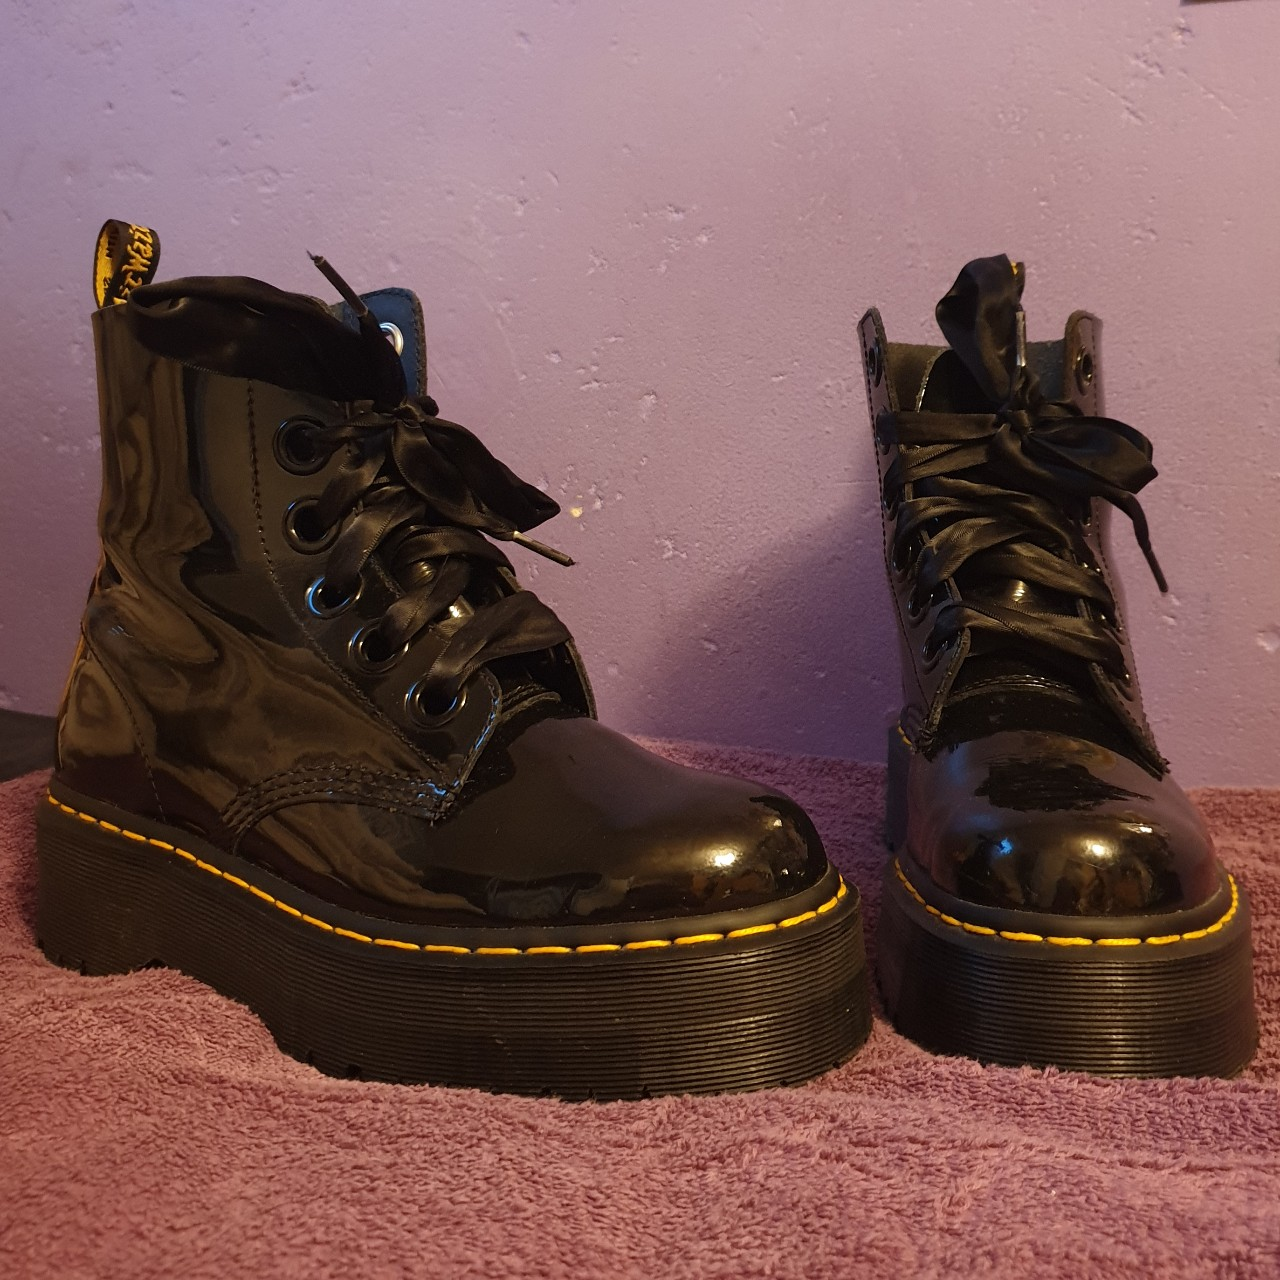 Dr. Martens Molly Patent Boots with